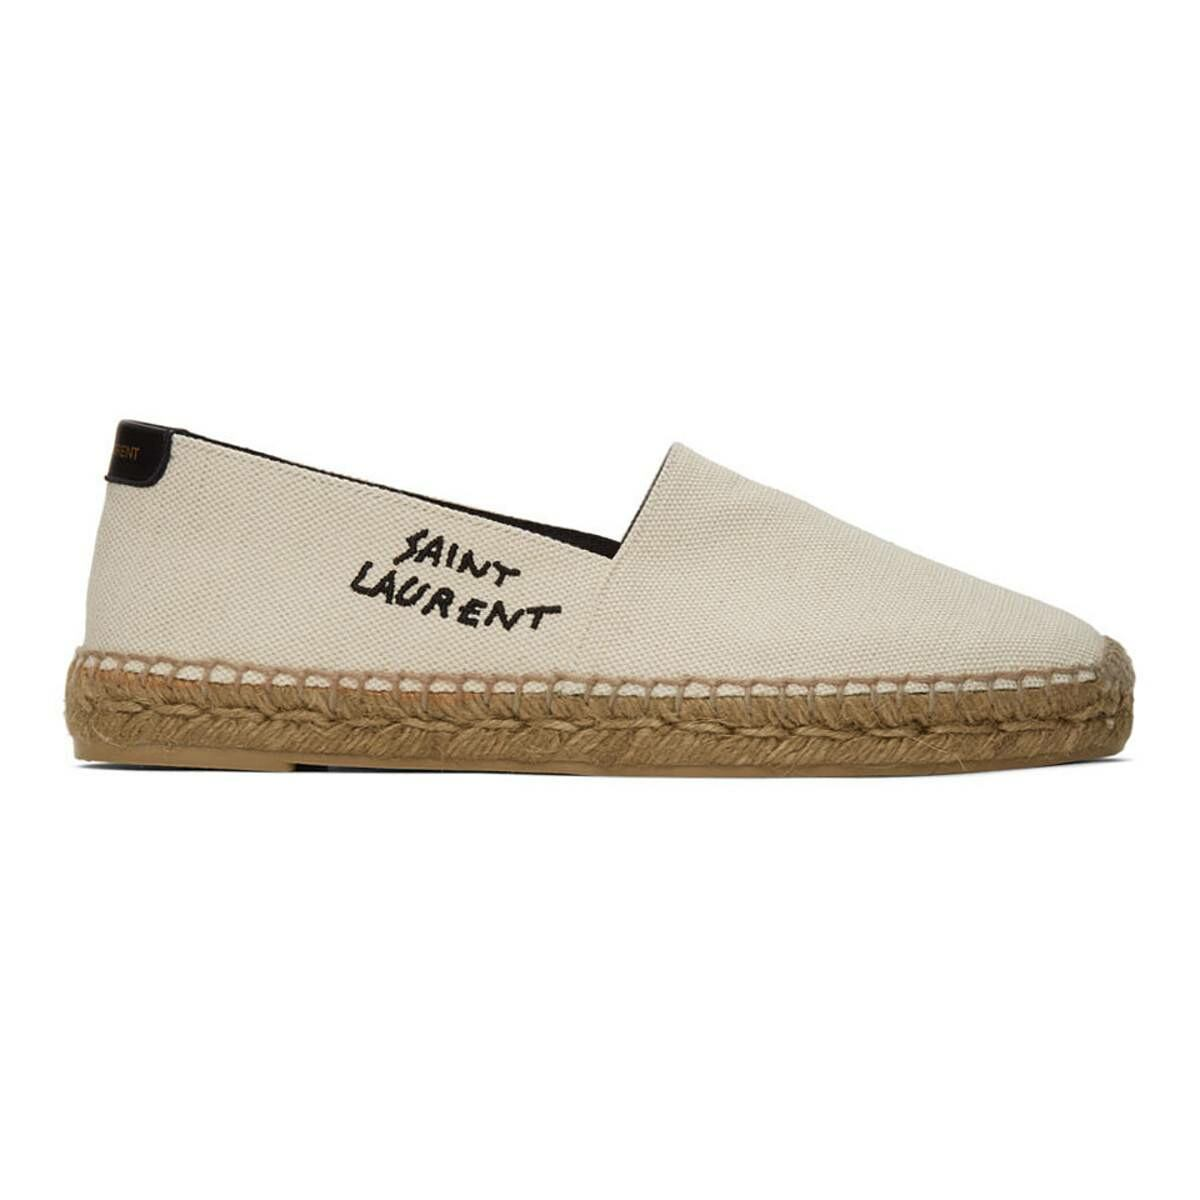 Saint Laurent Off-White Embroidered Espadrilles Ssense USA MEN Men SHOES Mens LOAFERS